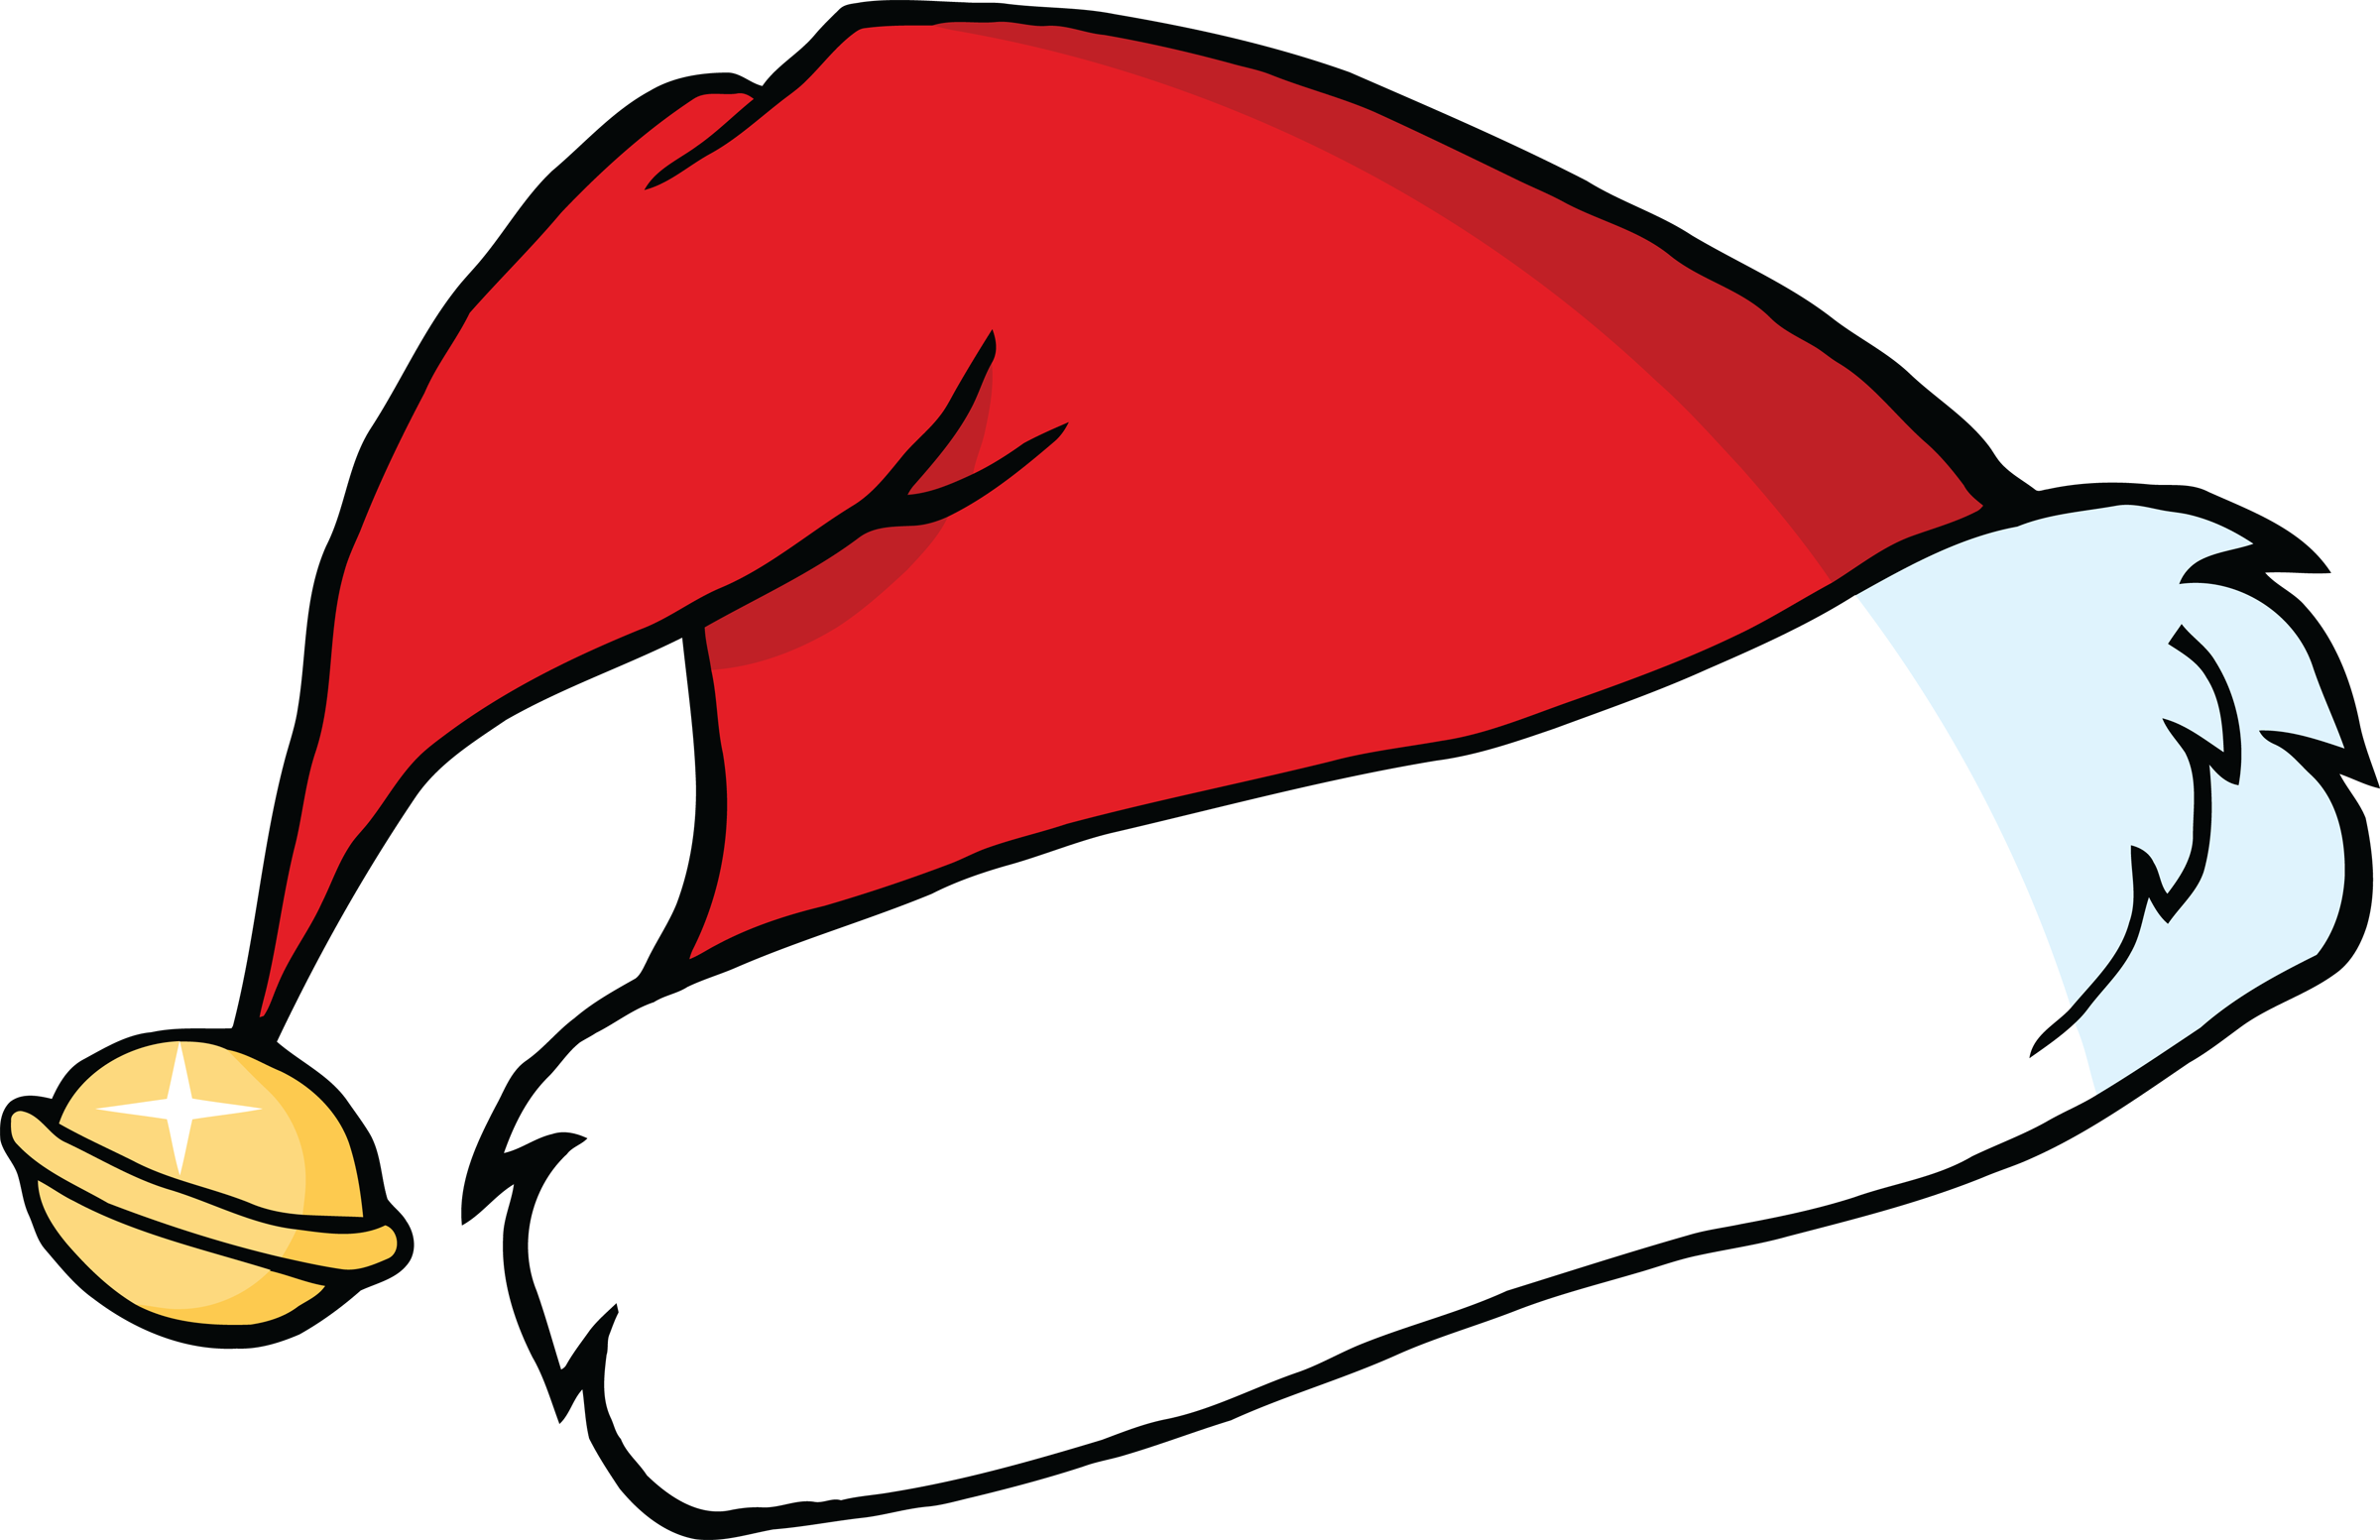 Clipart snowflake on hat clipart free library Christmas 2014 Christmas Photos 2014 5129joseph.jpg | Santa ... clipart free library